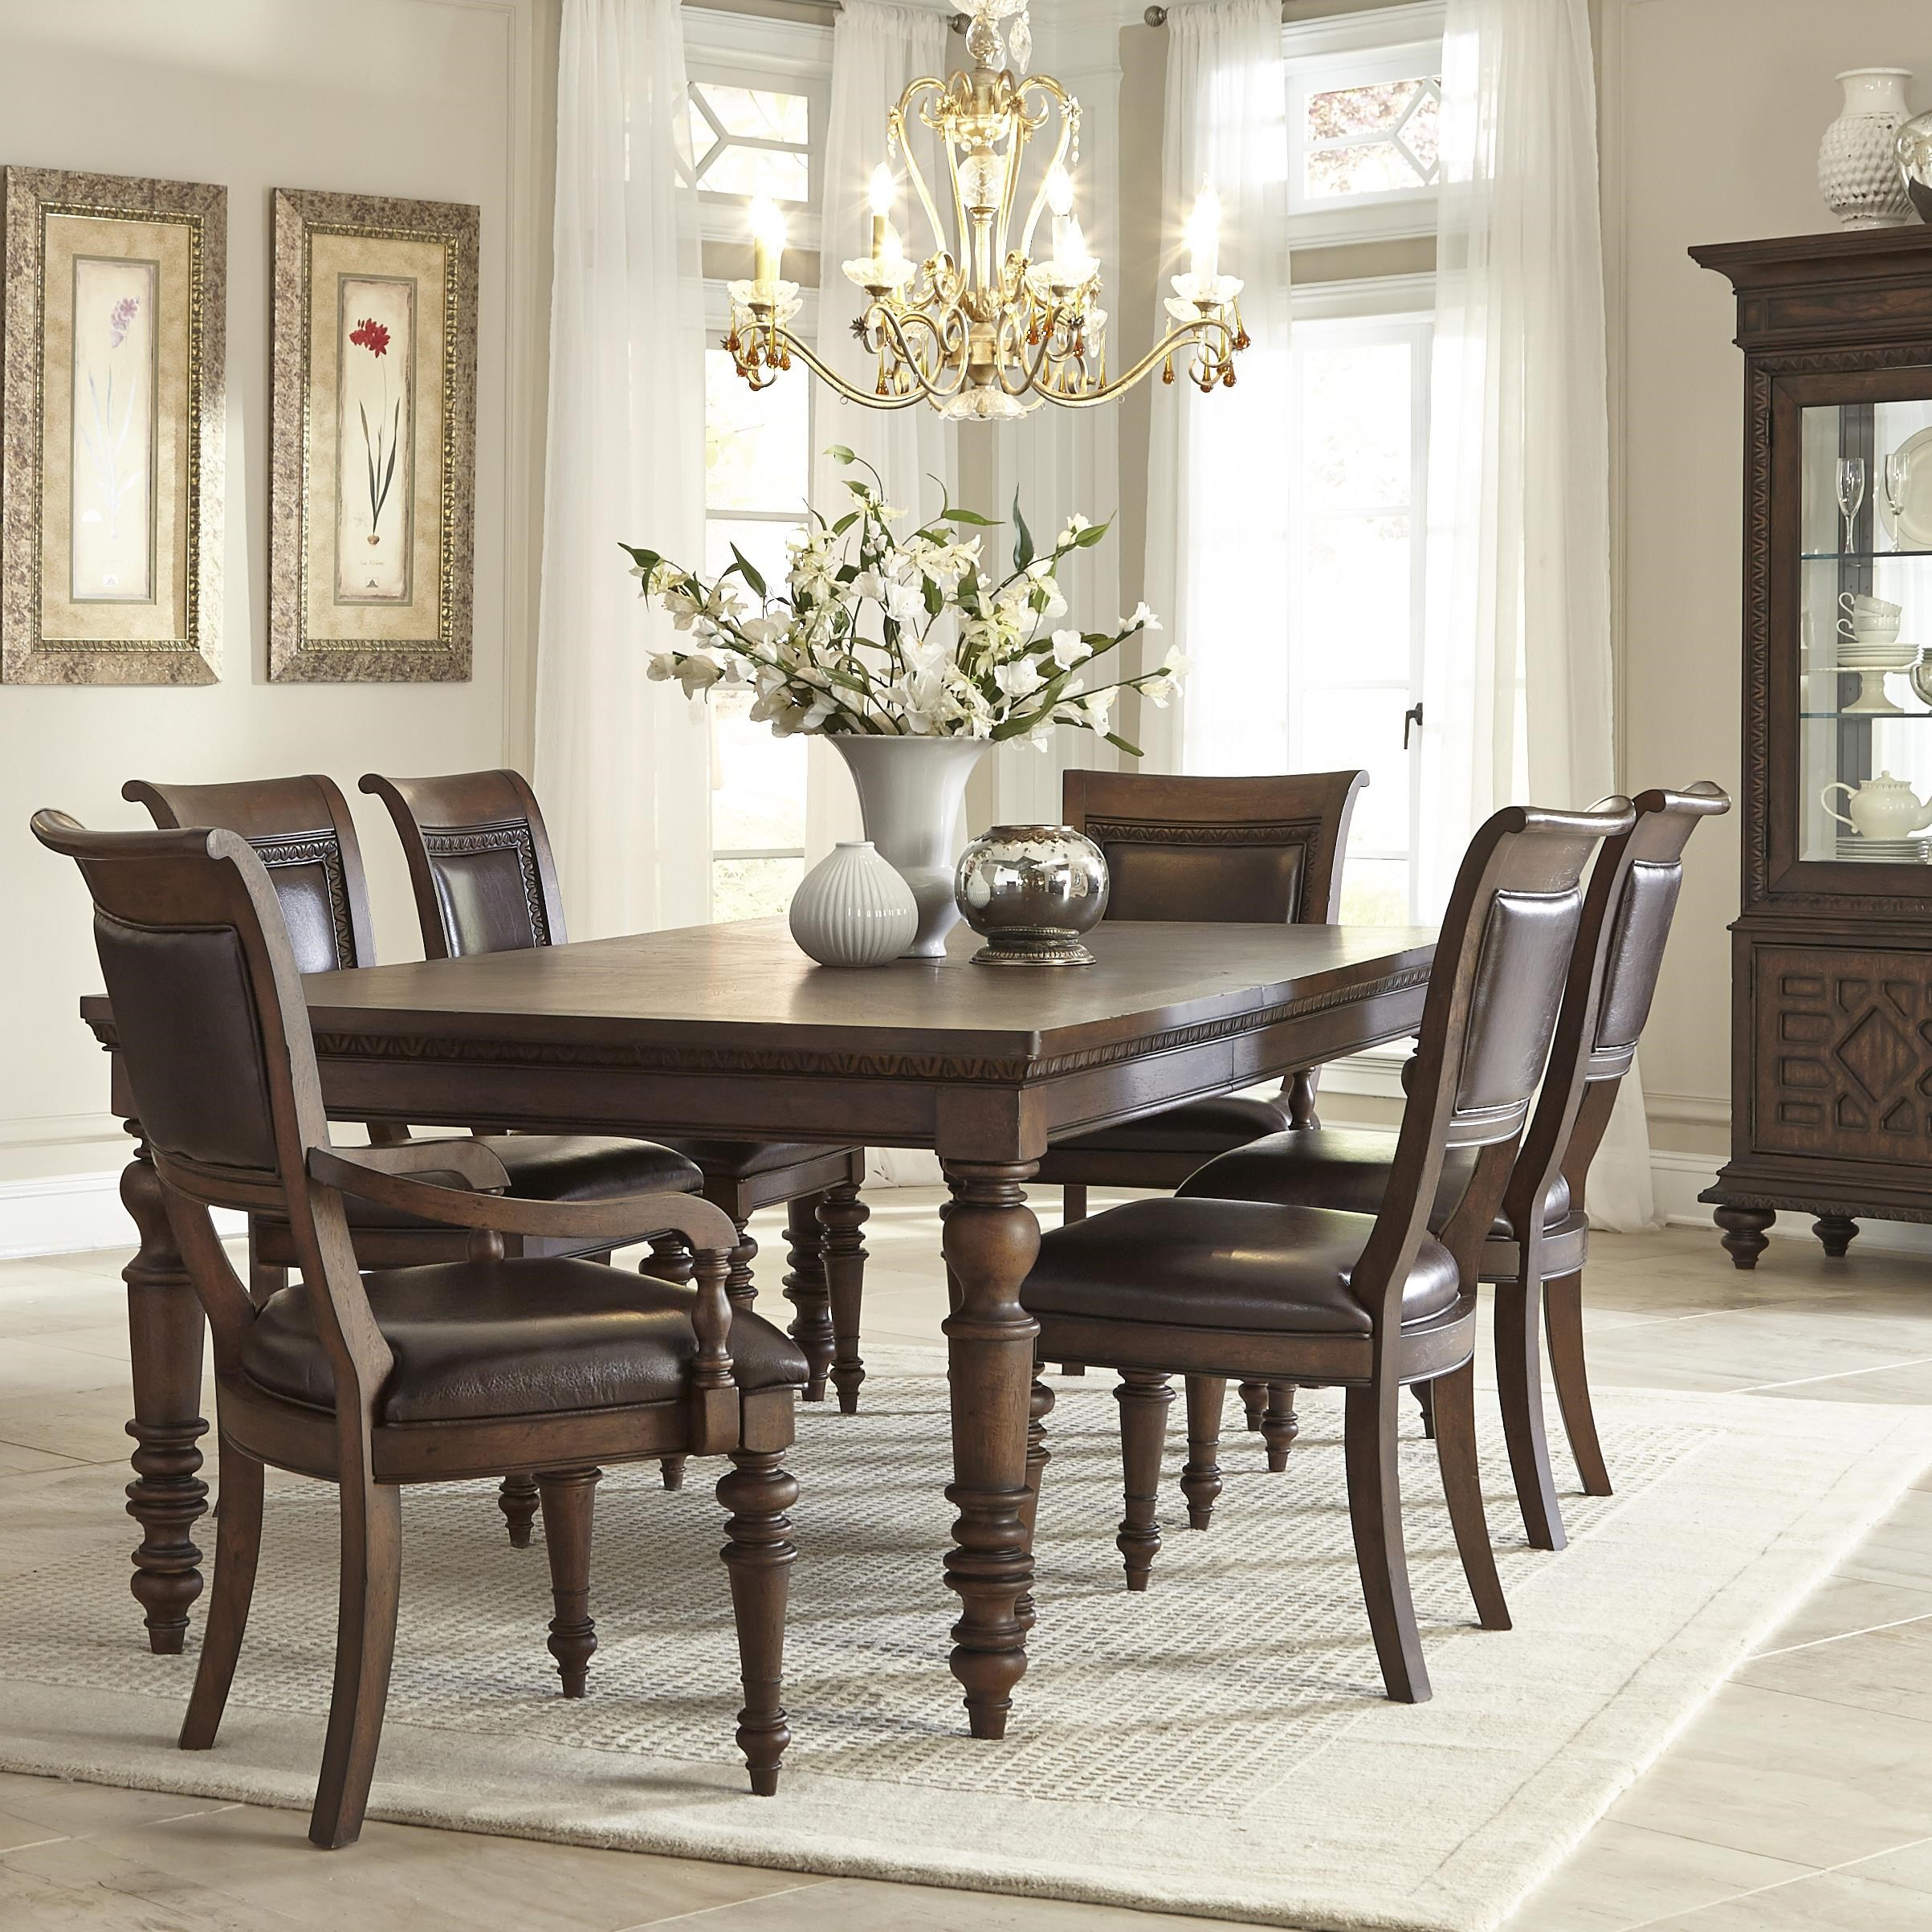 Superior Klaussner International Palencia Rectangular Dining Table With 2  Upholstered Arm Chairs And 4 Upholstered Side Chairs